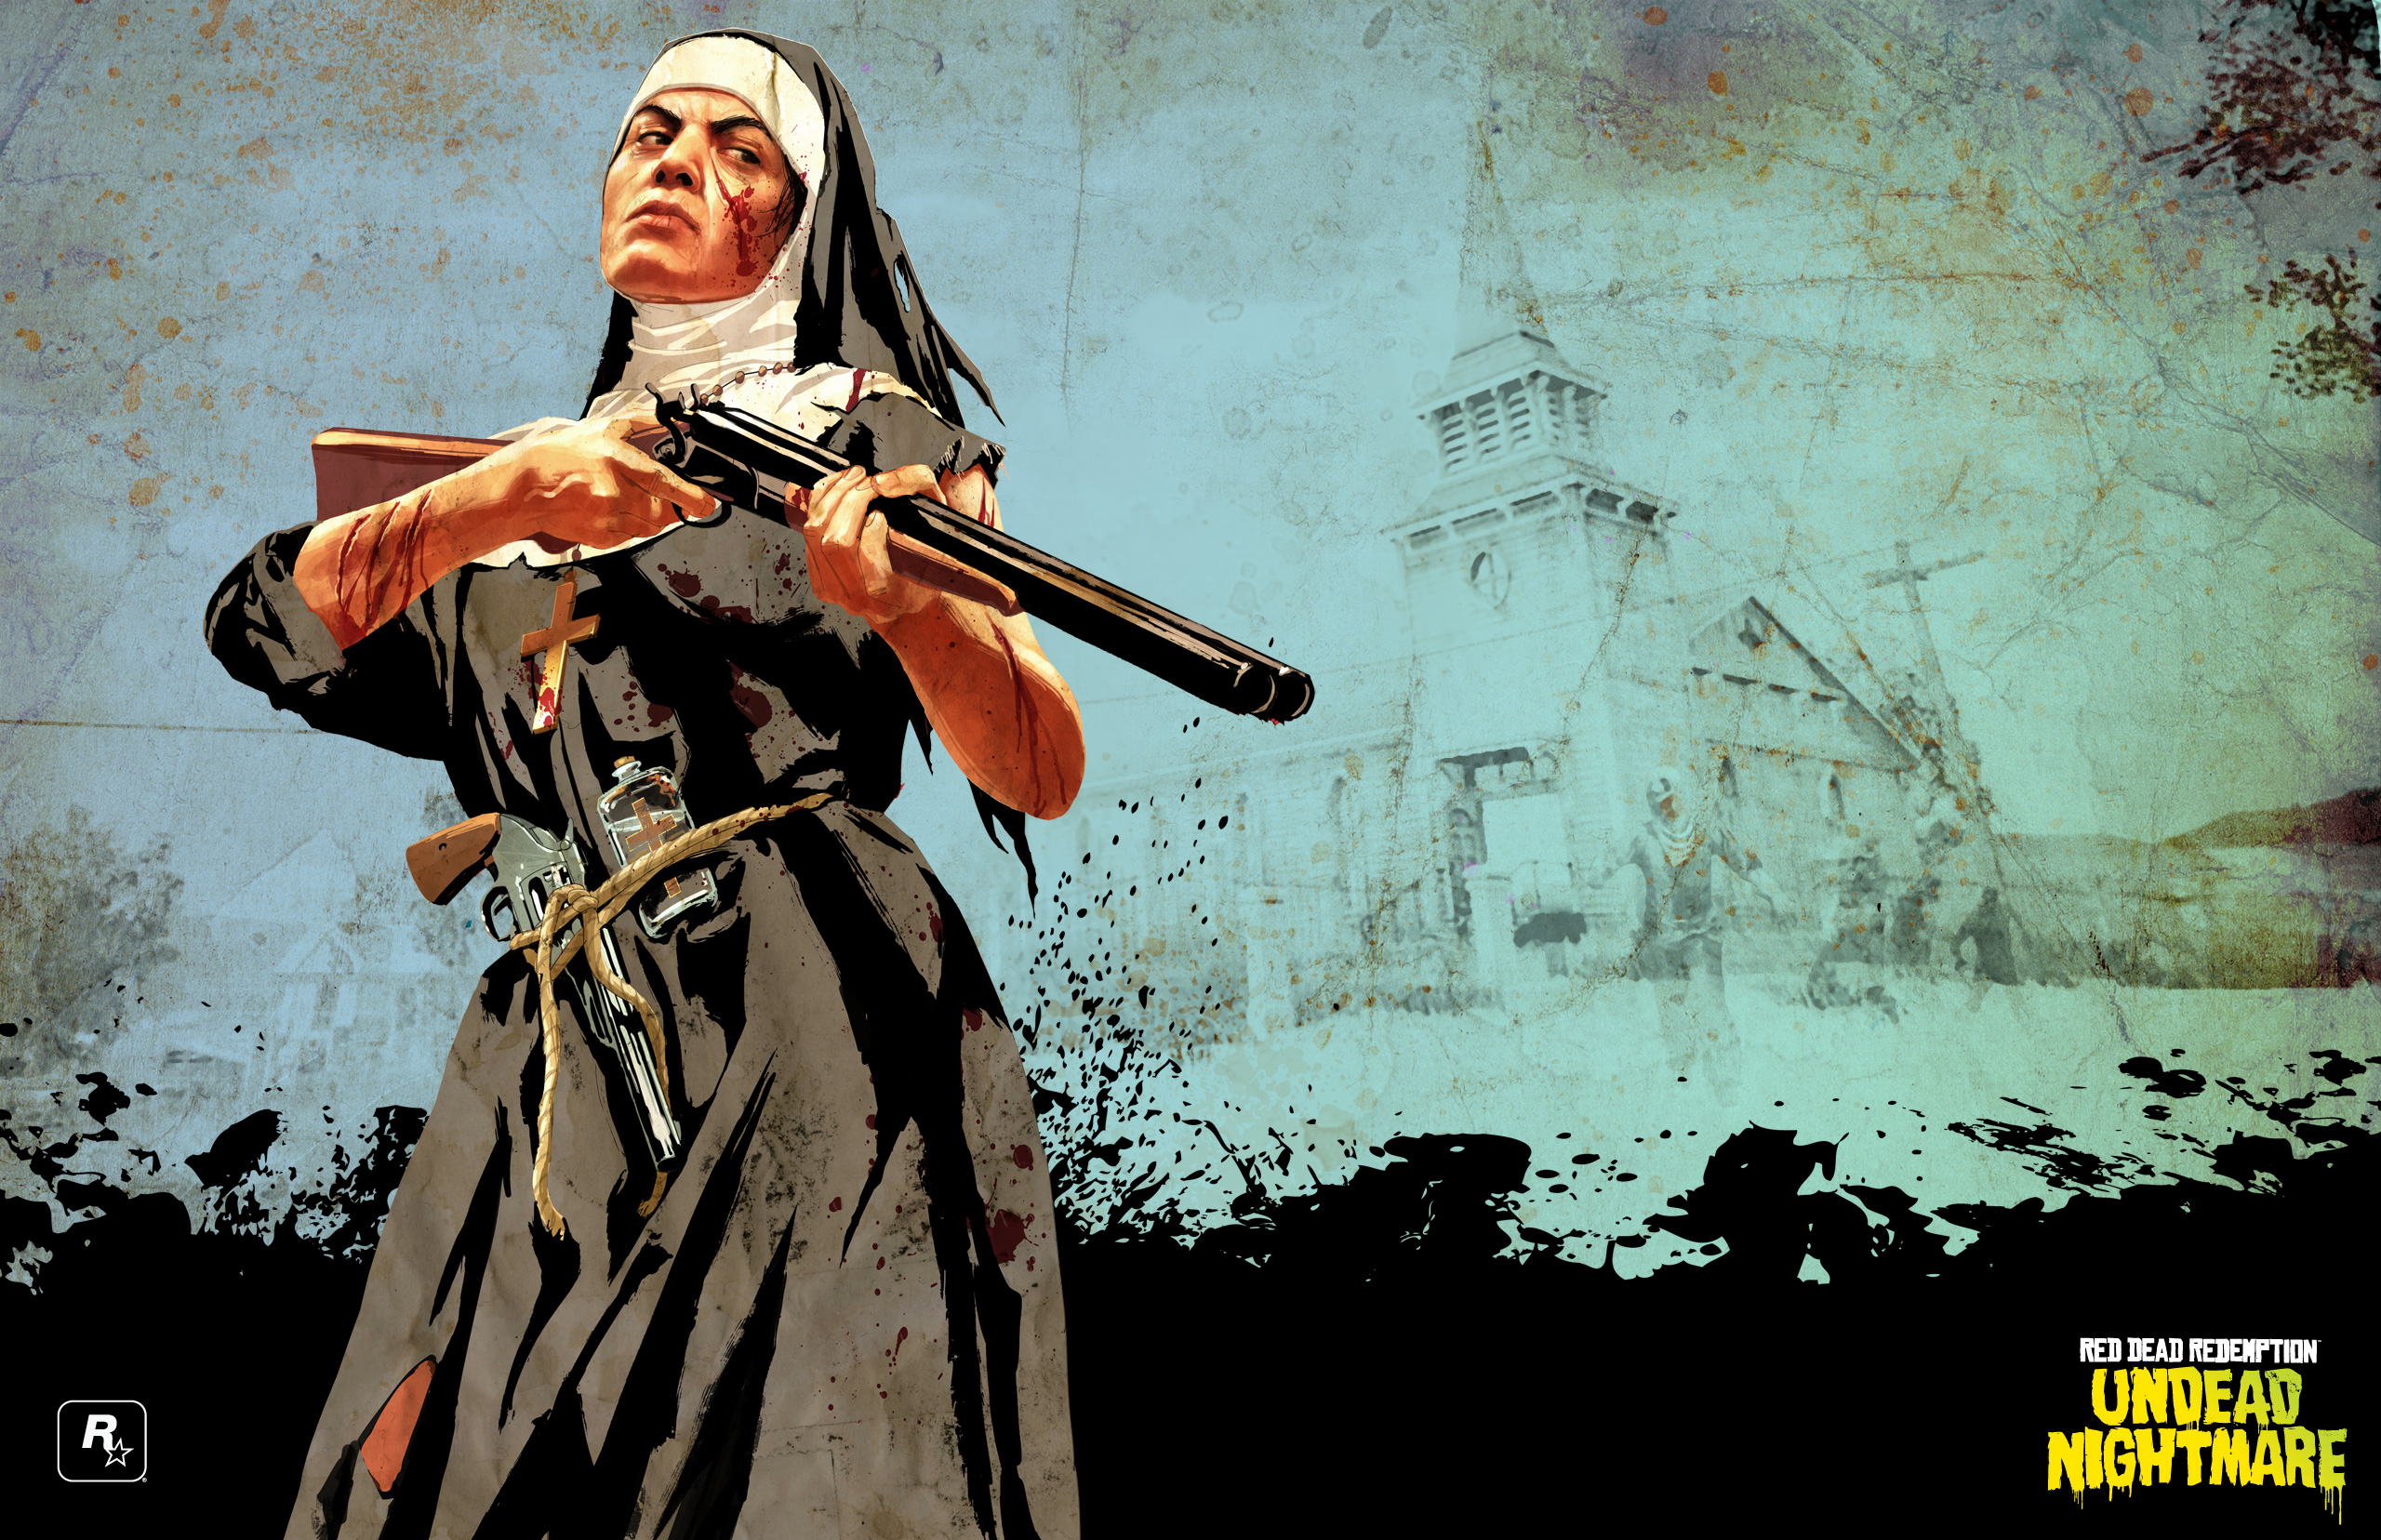 5 Red Dead Redemption Undead Nightmare Hd Wallpapers Background